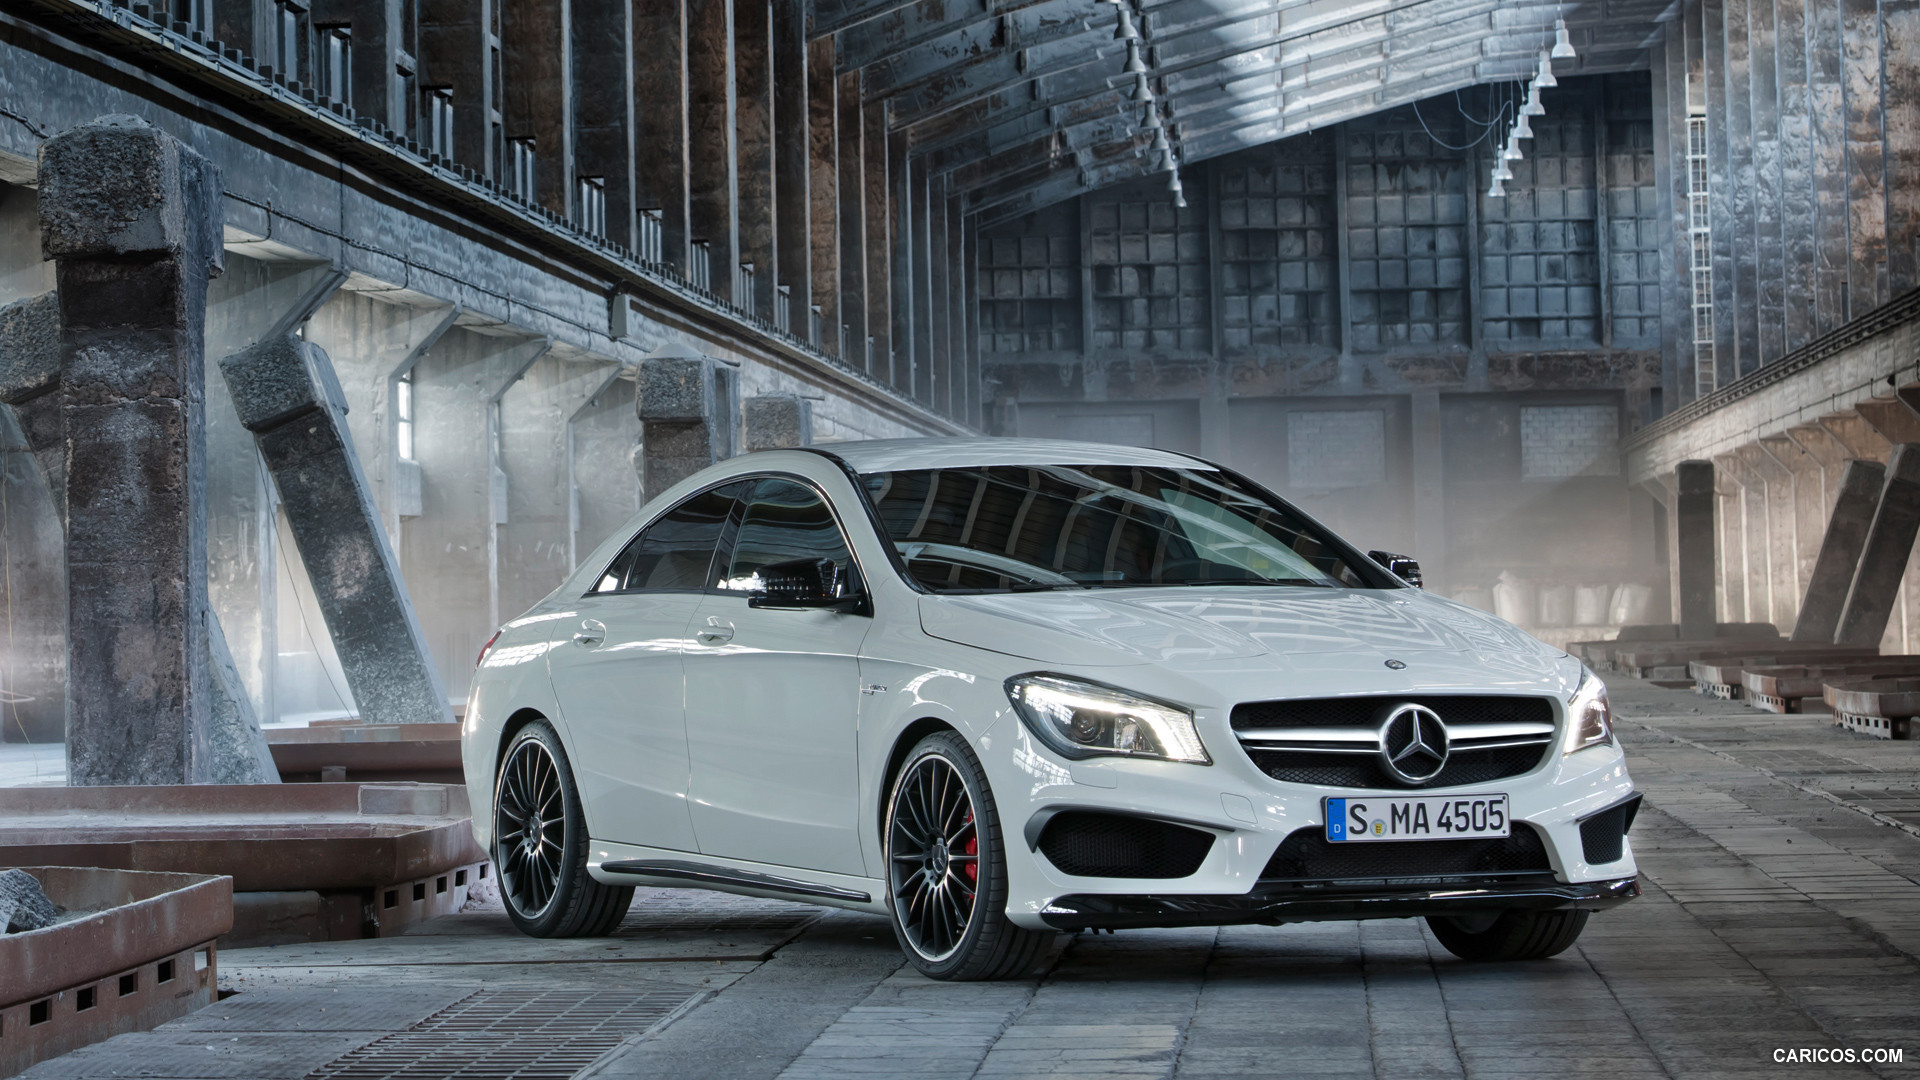 mercedes benz cla 45 amg picture 109287 mercedes benz photo. Cars Review. Best American Auto & Cars Review